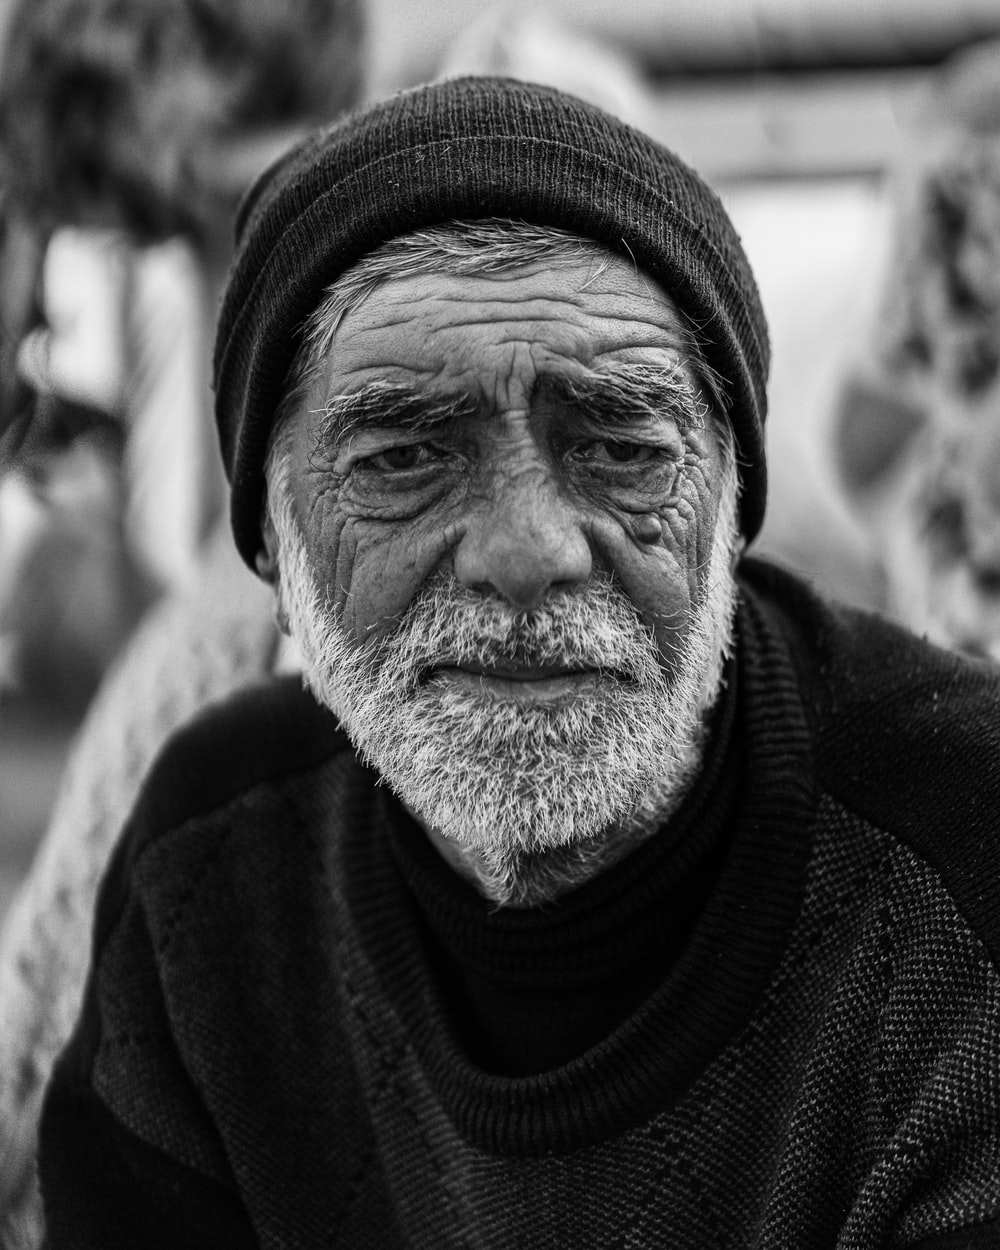 grayscale photo of man in knit cap